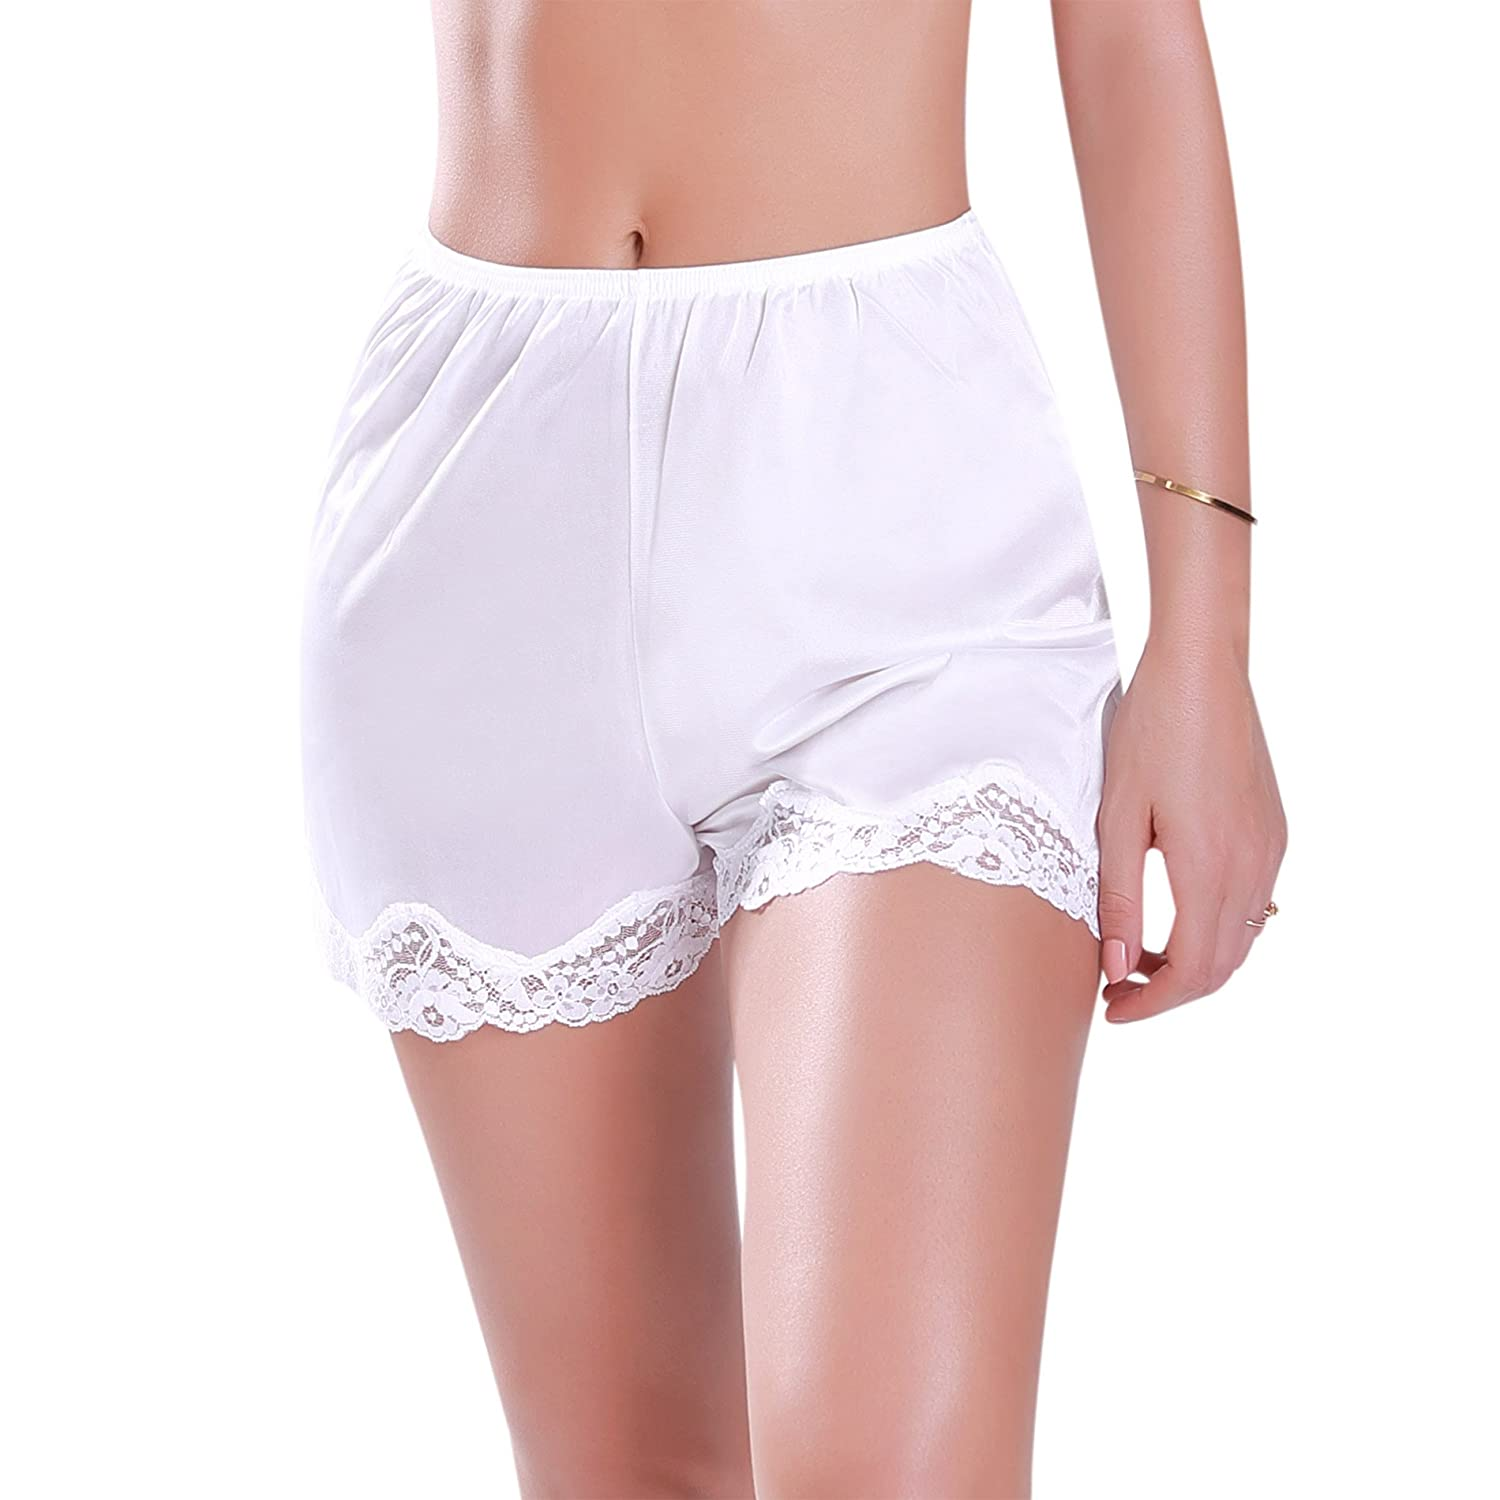 Ilusion 1039 Womens Satin Bloomer Pettipant Short Slip